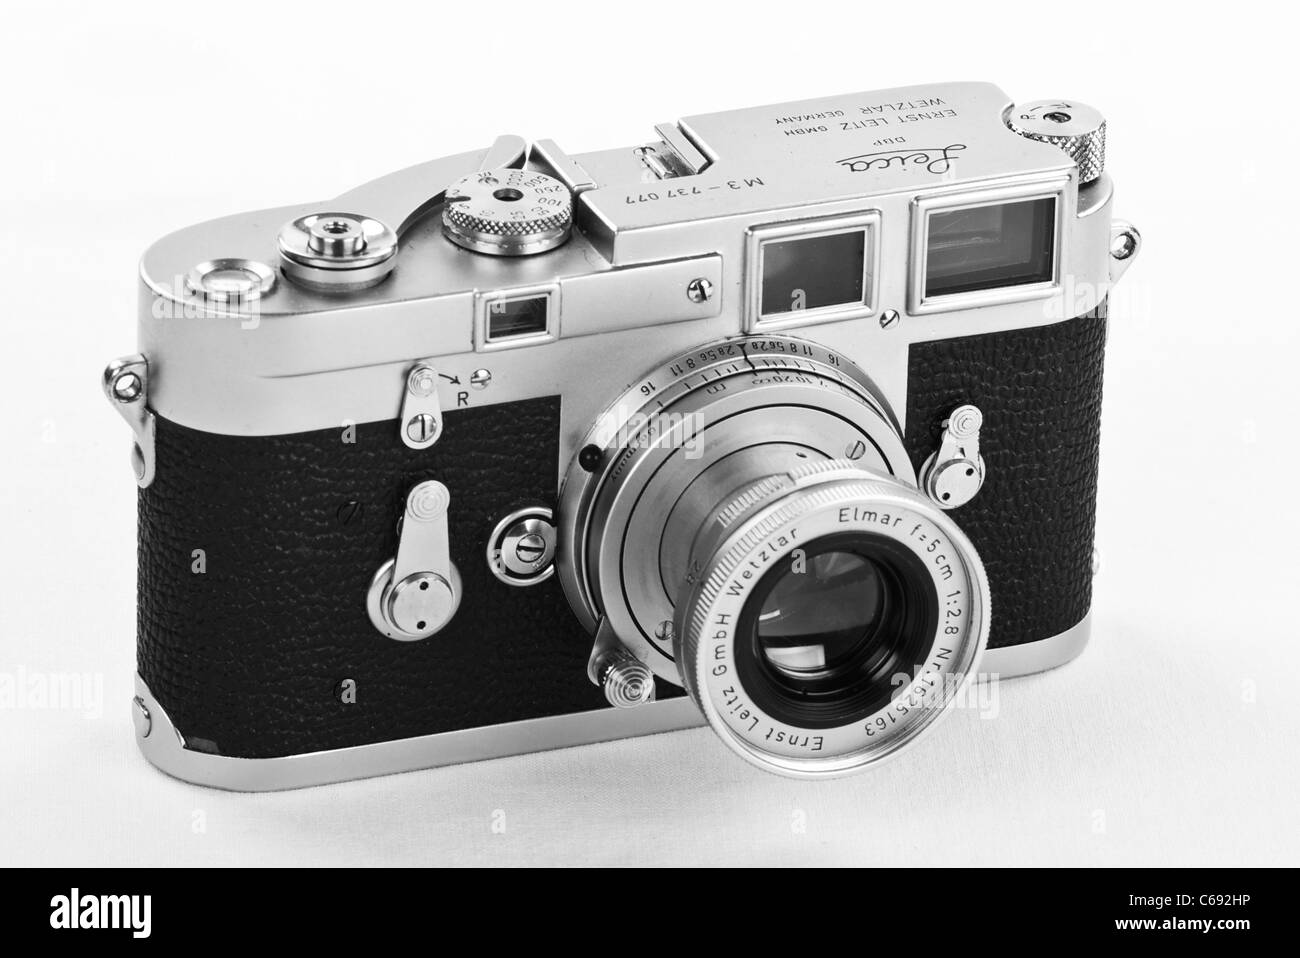 Classic leica 35mm m3 rangefinder camera with 50mm elmar lens 1950s modernist design icon black and white image